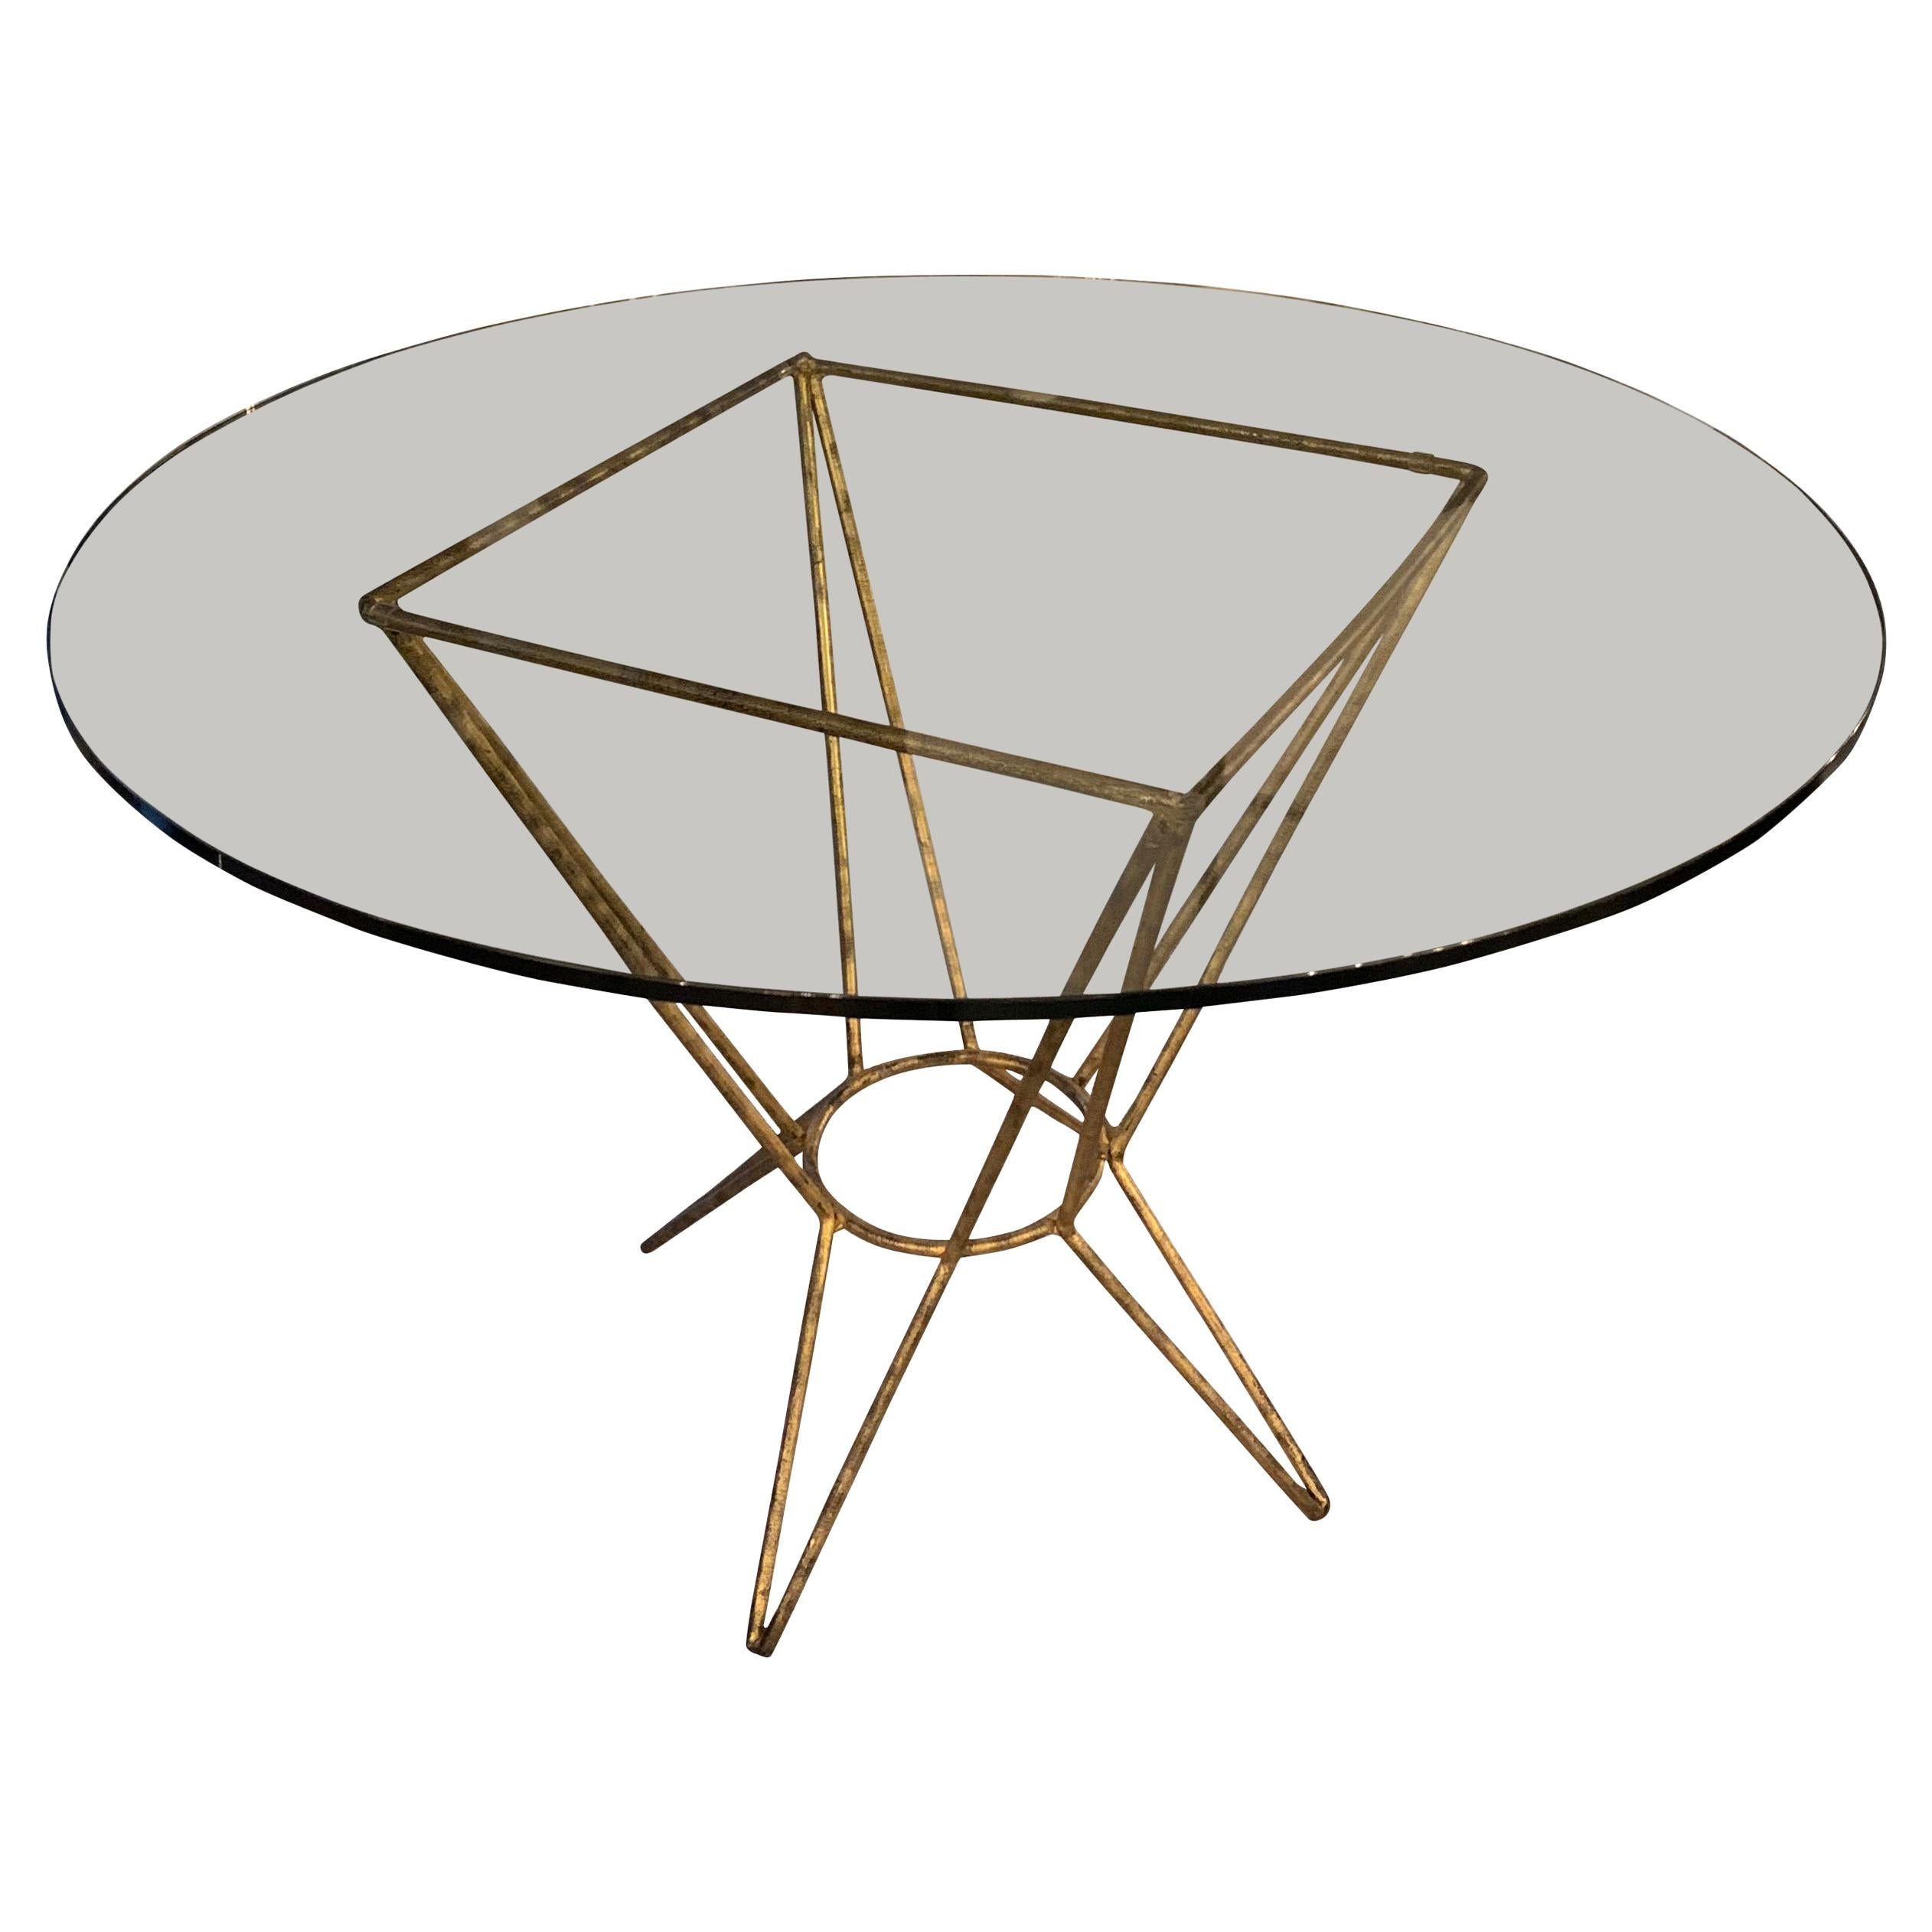 Gold Gilt Base Round Glass Top Side Table, France, Midcentury